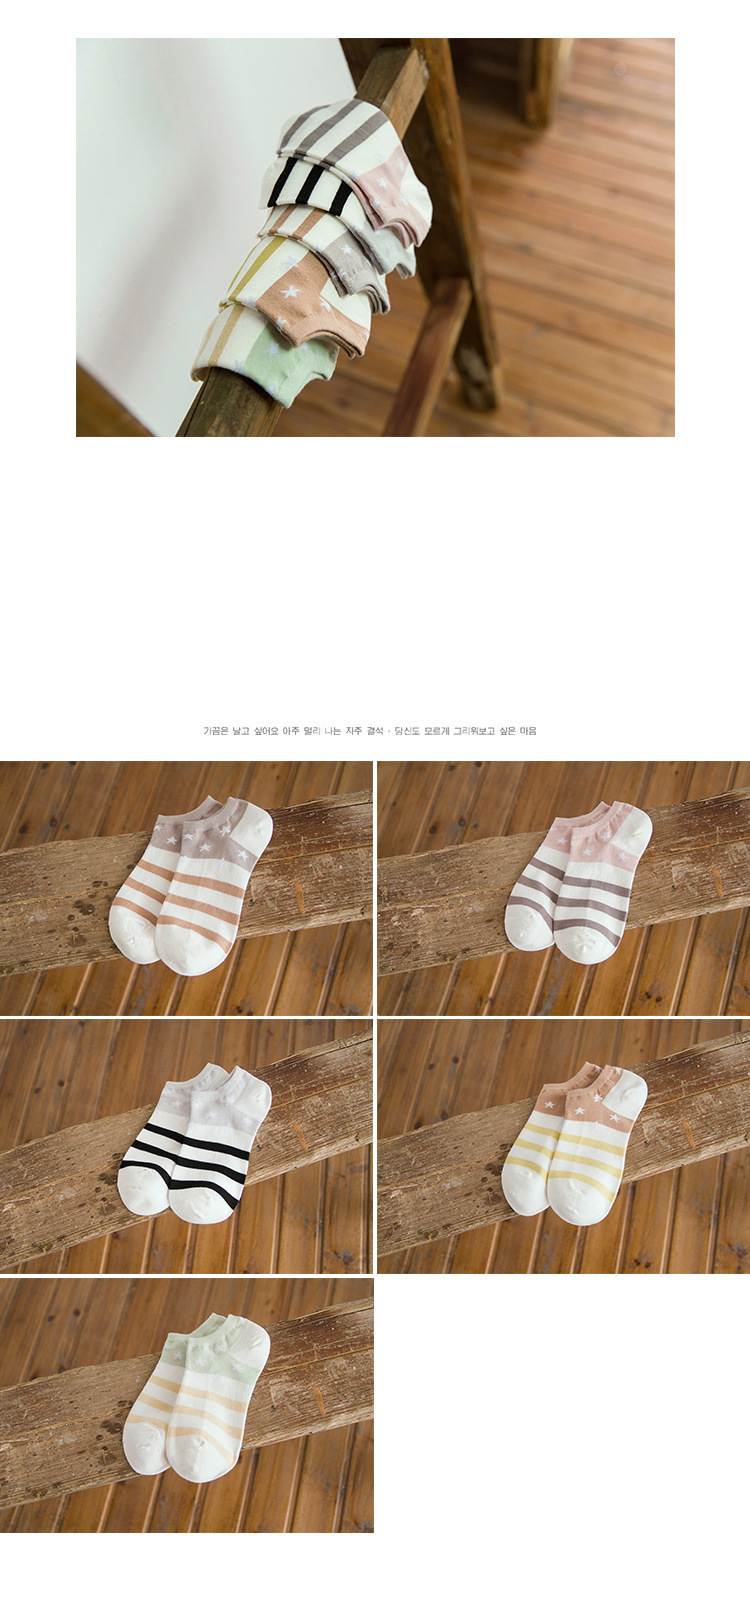 HTB1xqJnRVXXXXaZXXXXq6xXFXXXy - Cotton Boat Socks Woman Stars Stripe Socks ankle low female invisible color girl boy slipper casual hosiery  1pair=2pcs ws106